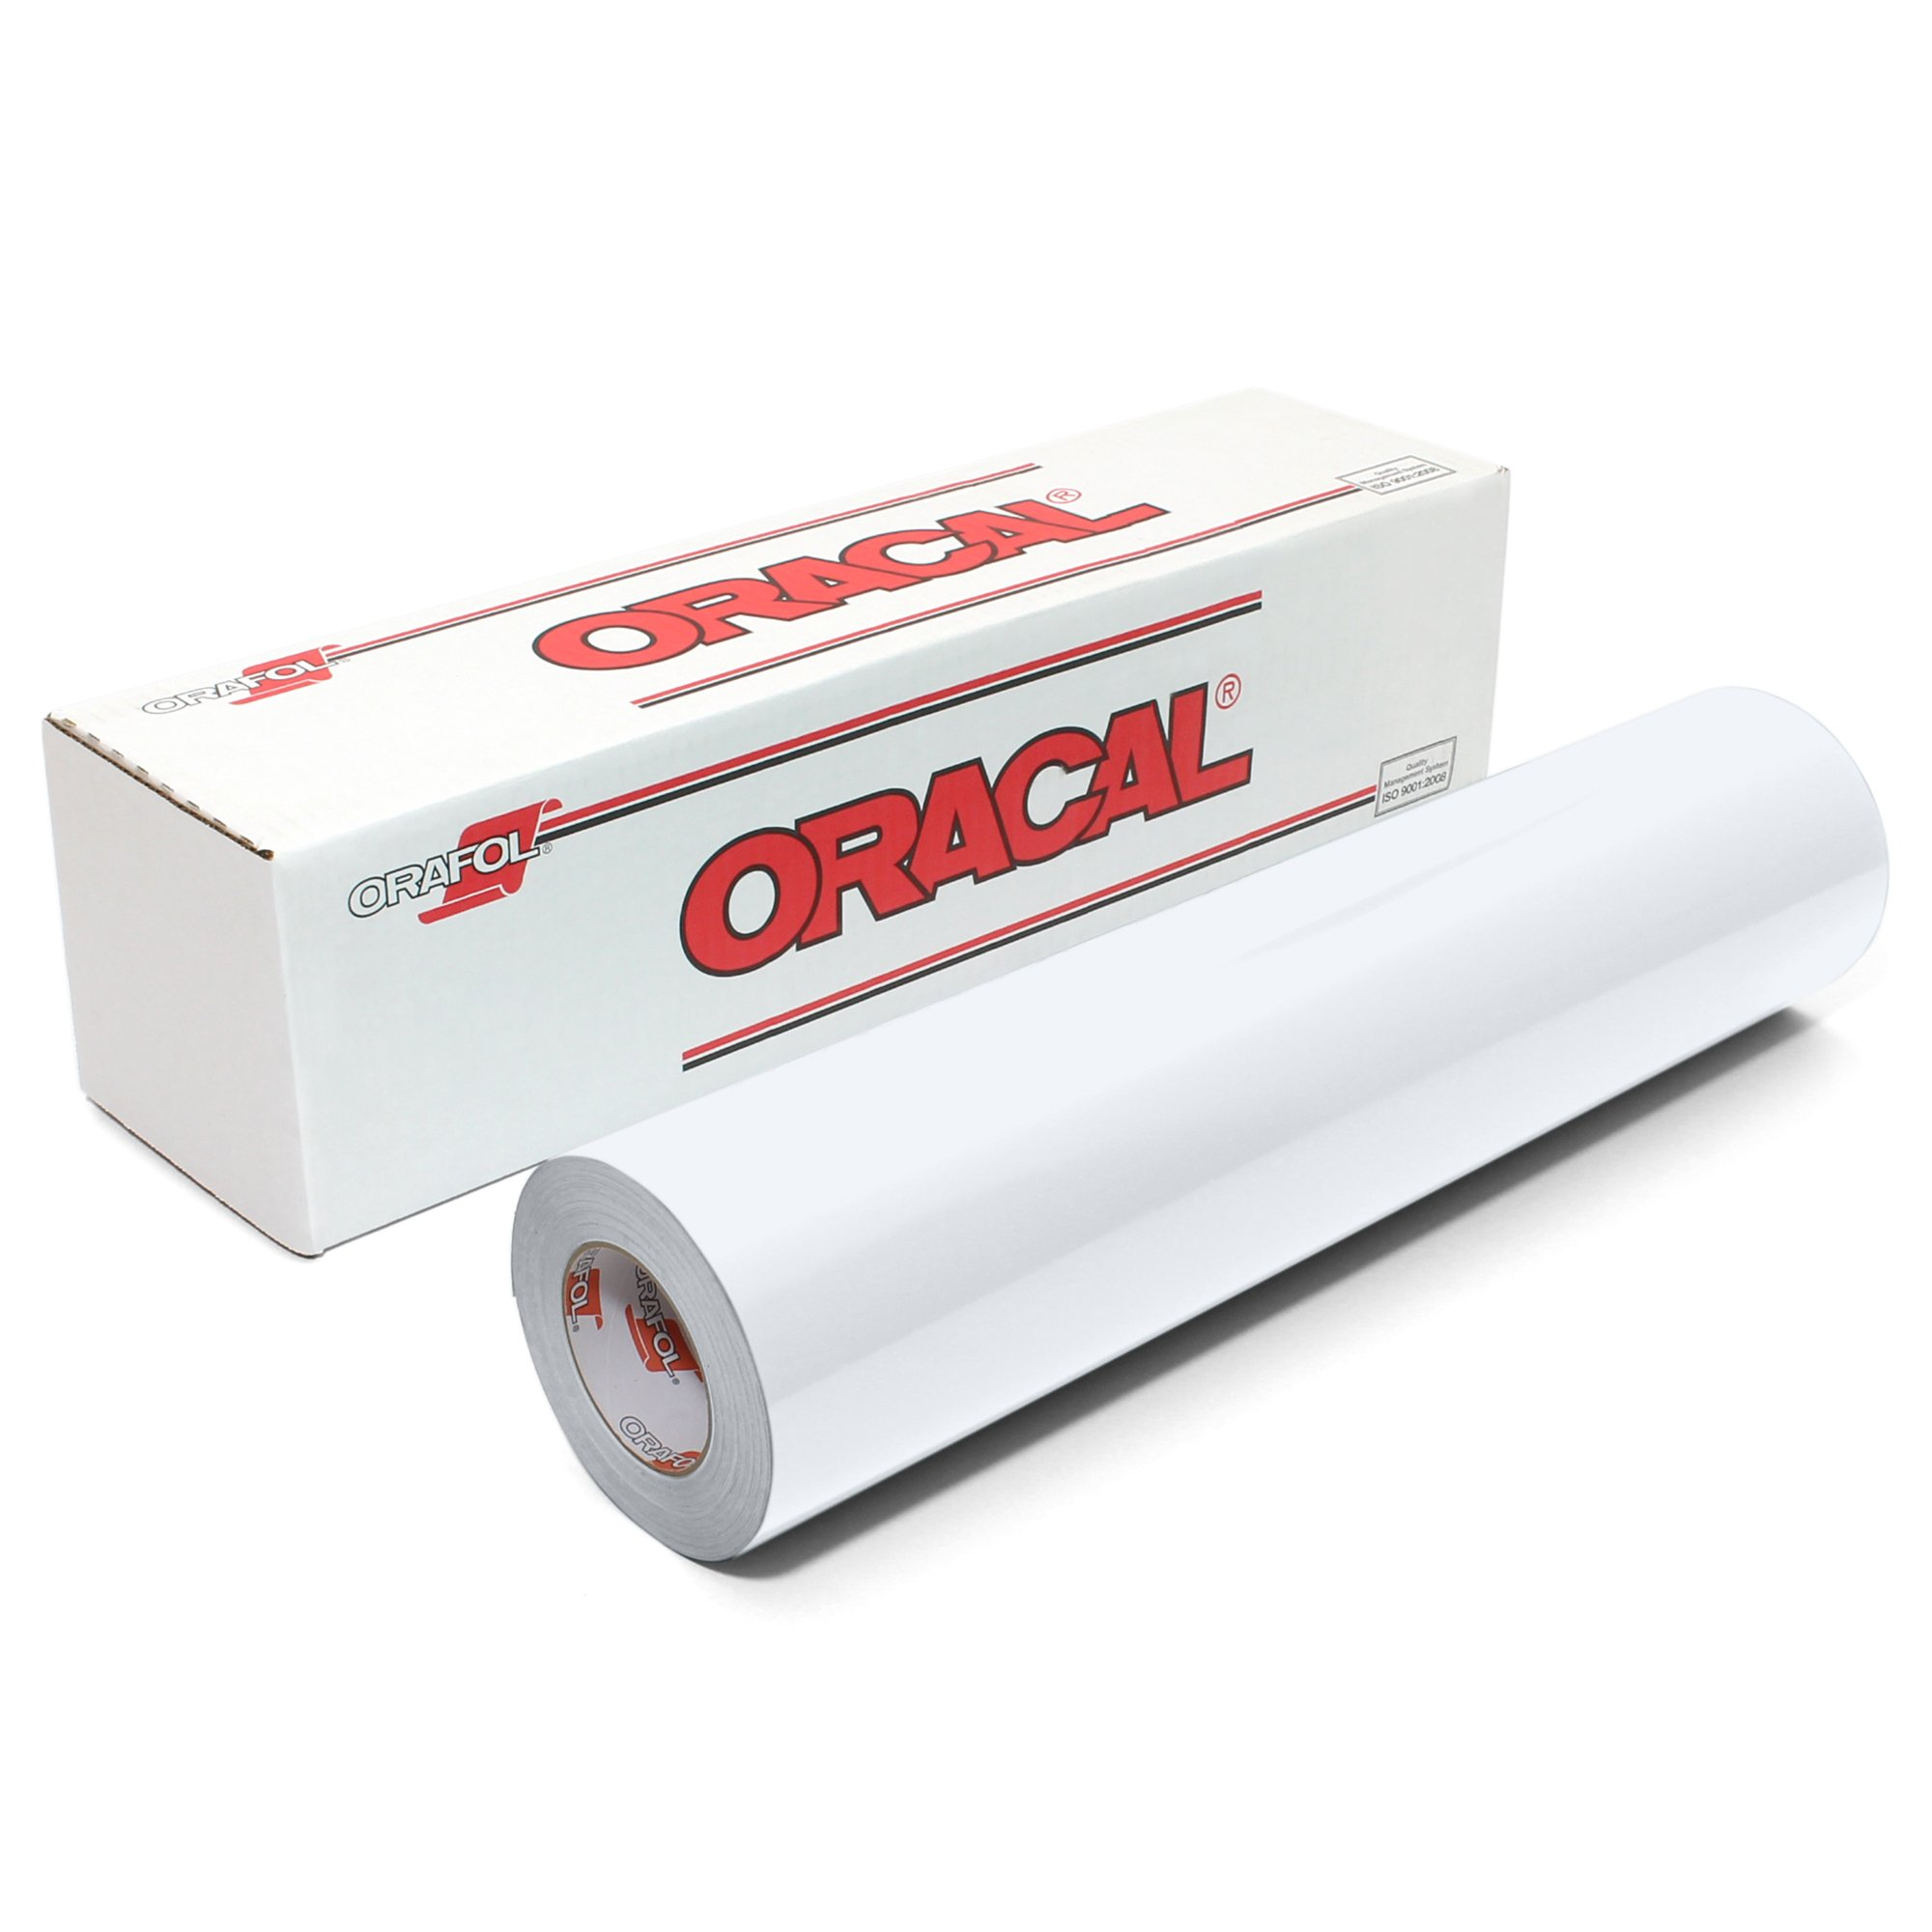 Oracal 651 Glossy Vinyl Roll 24 Inches by 150 Feet - White by ORACAL